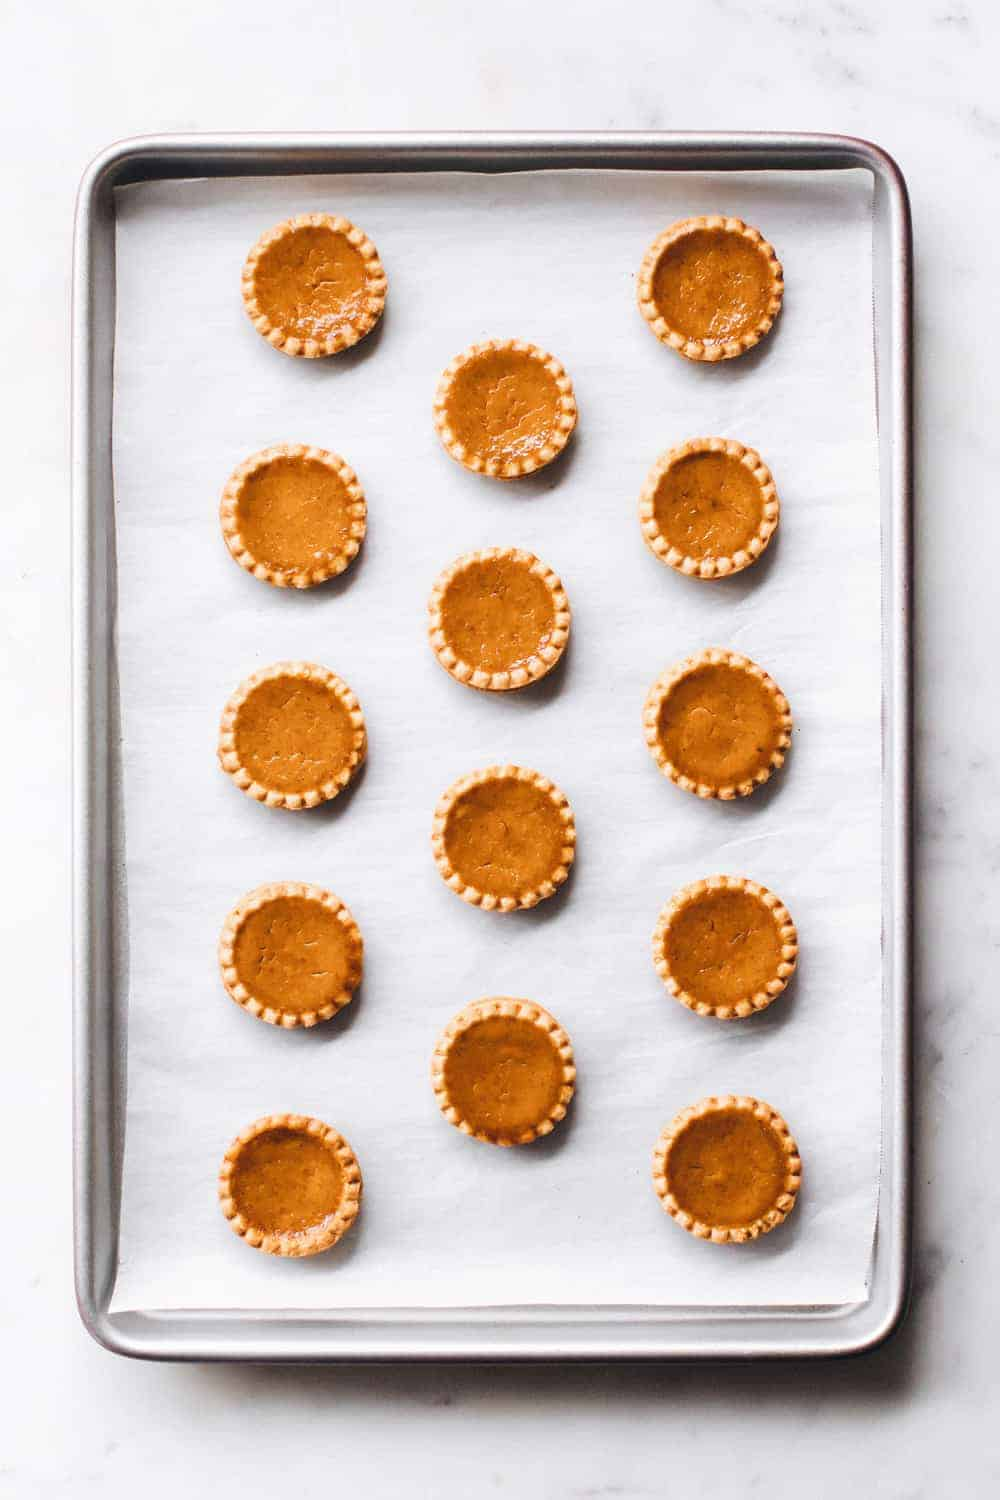 Mini Pumpkin Pies are simple and totally delicious. What's better than pumpkin pie in mini form?